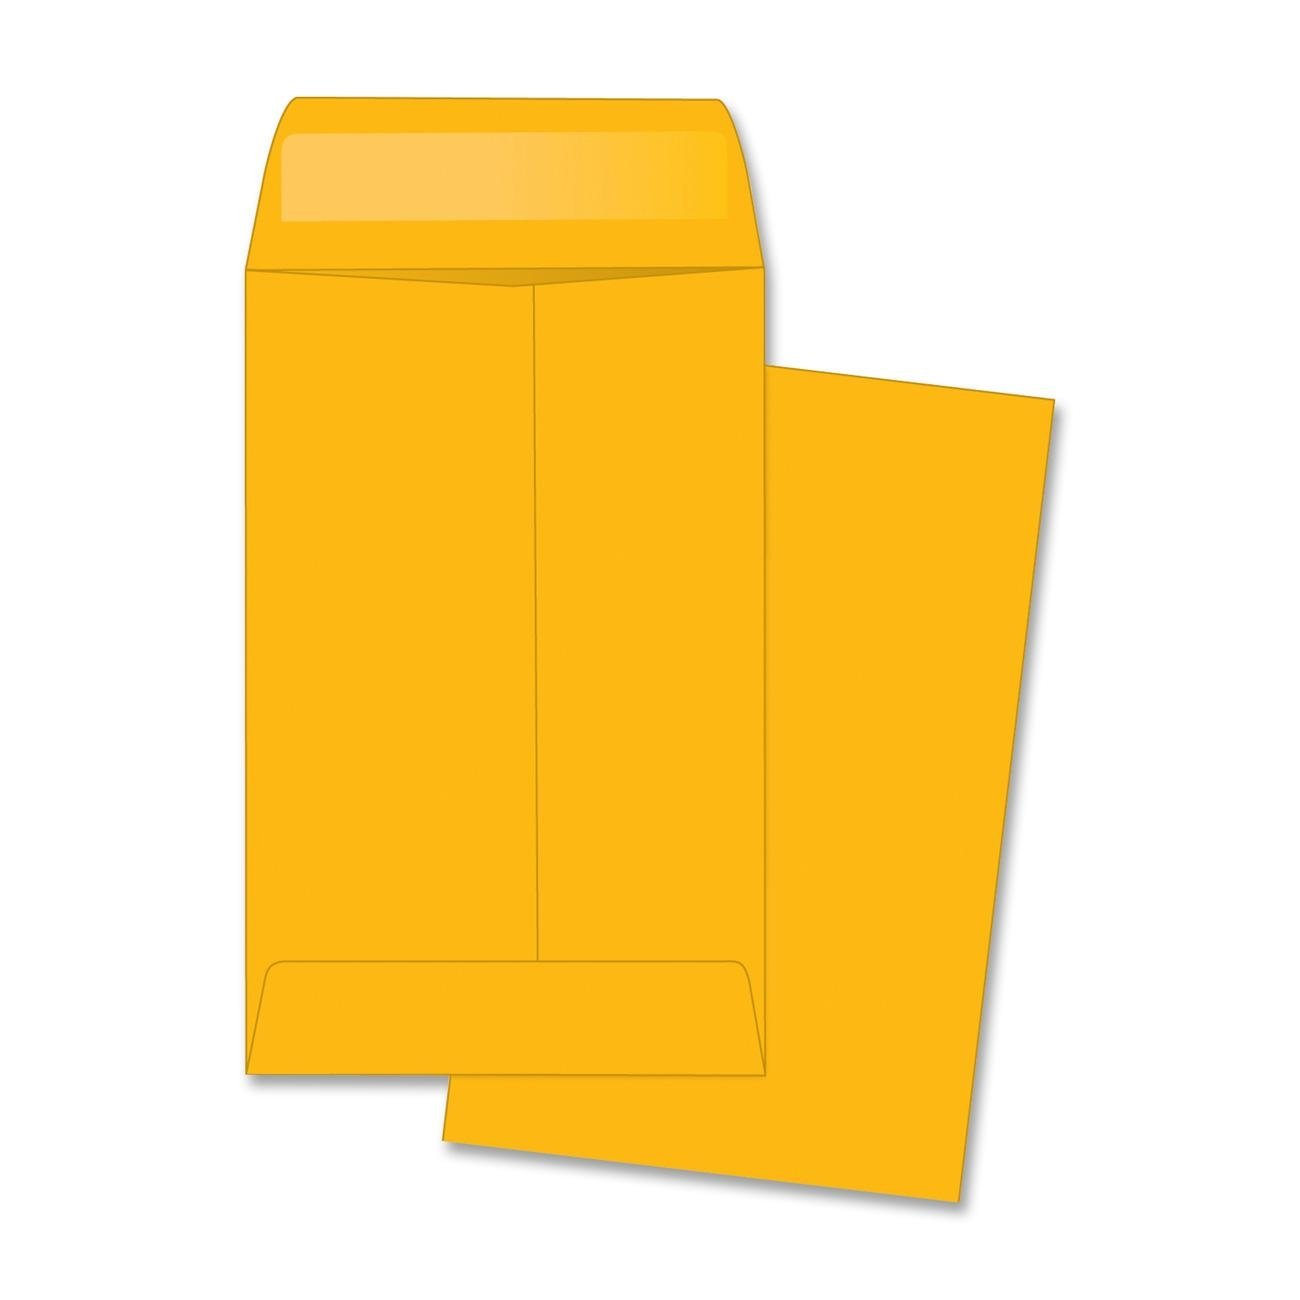 #1 Coin Envelopes - 50 Envelopes - 2-1/4